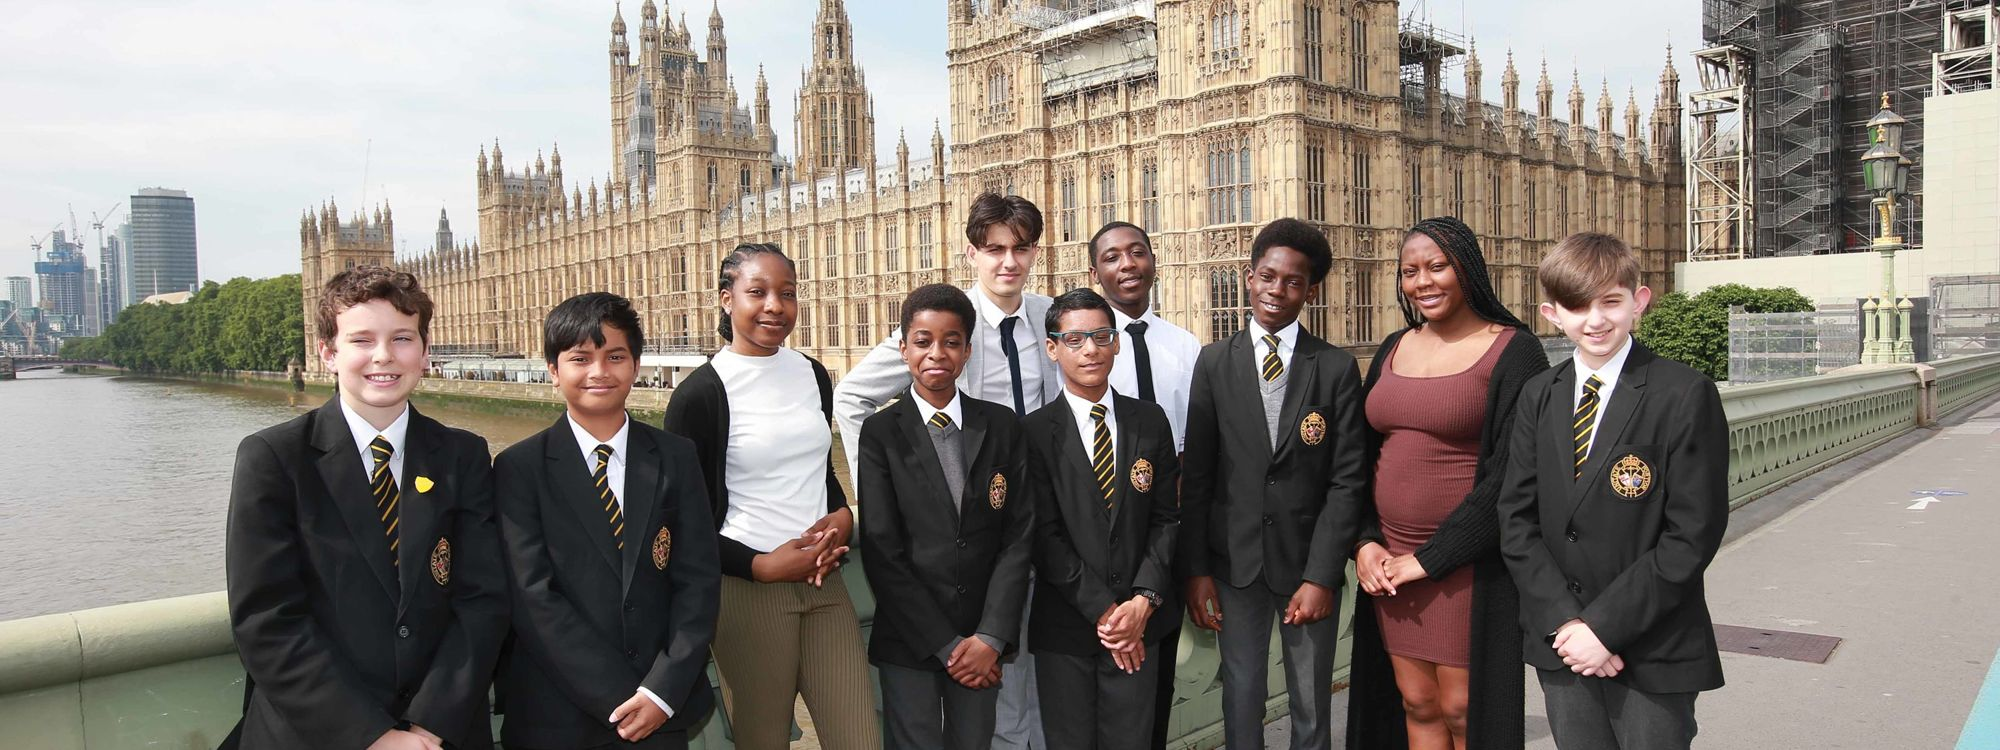 Students outside the Houses of Parliament